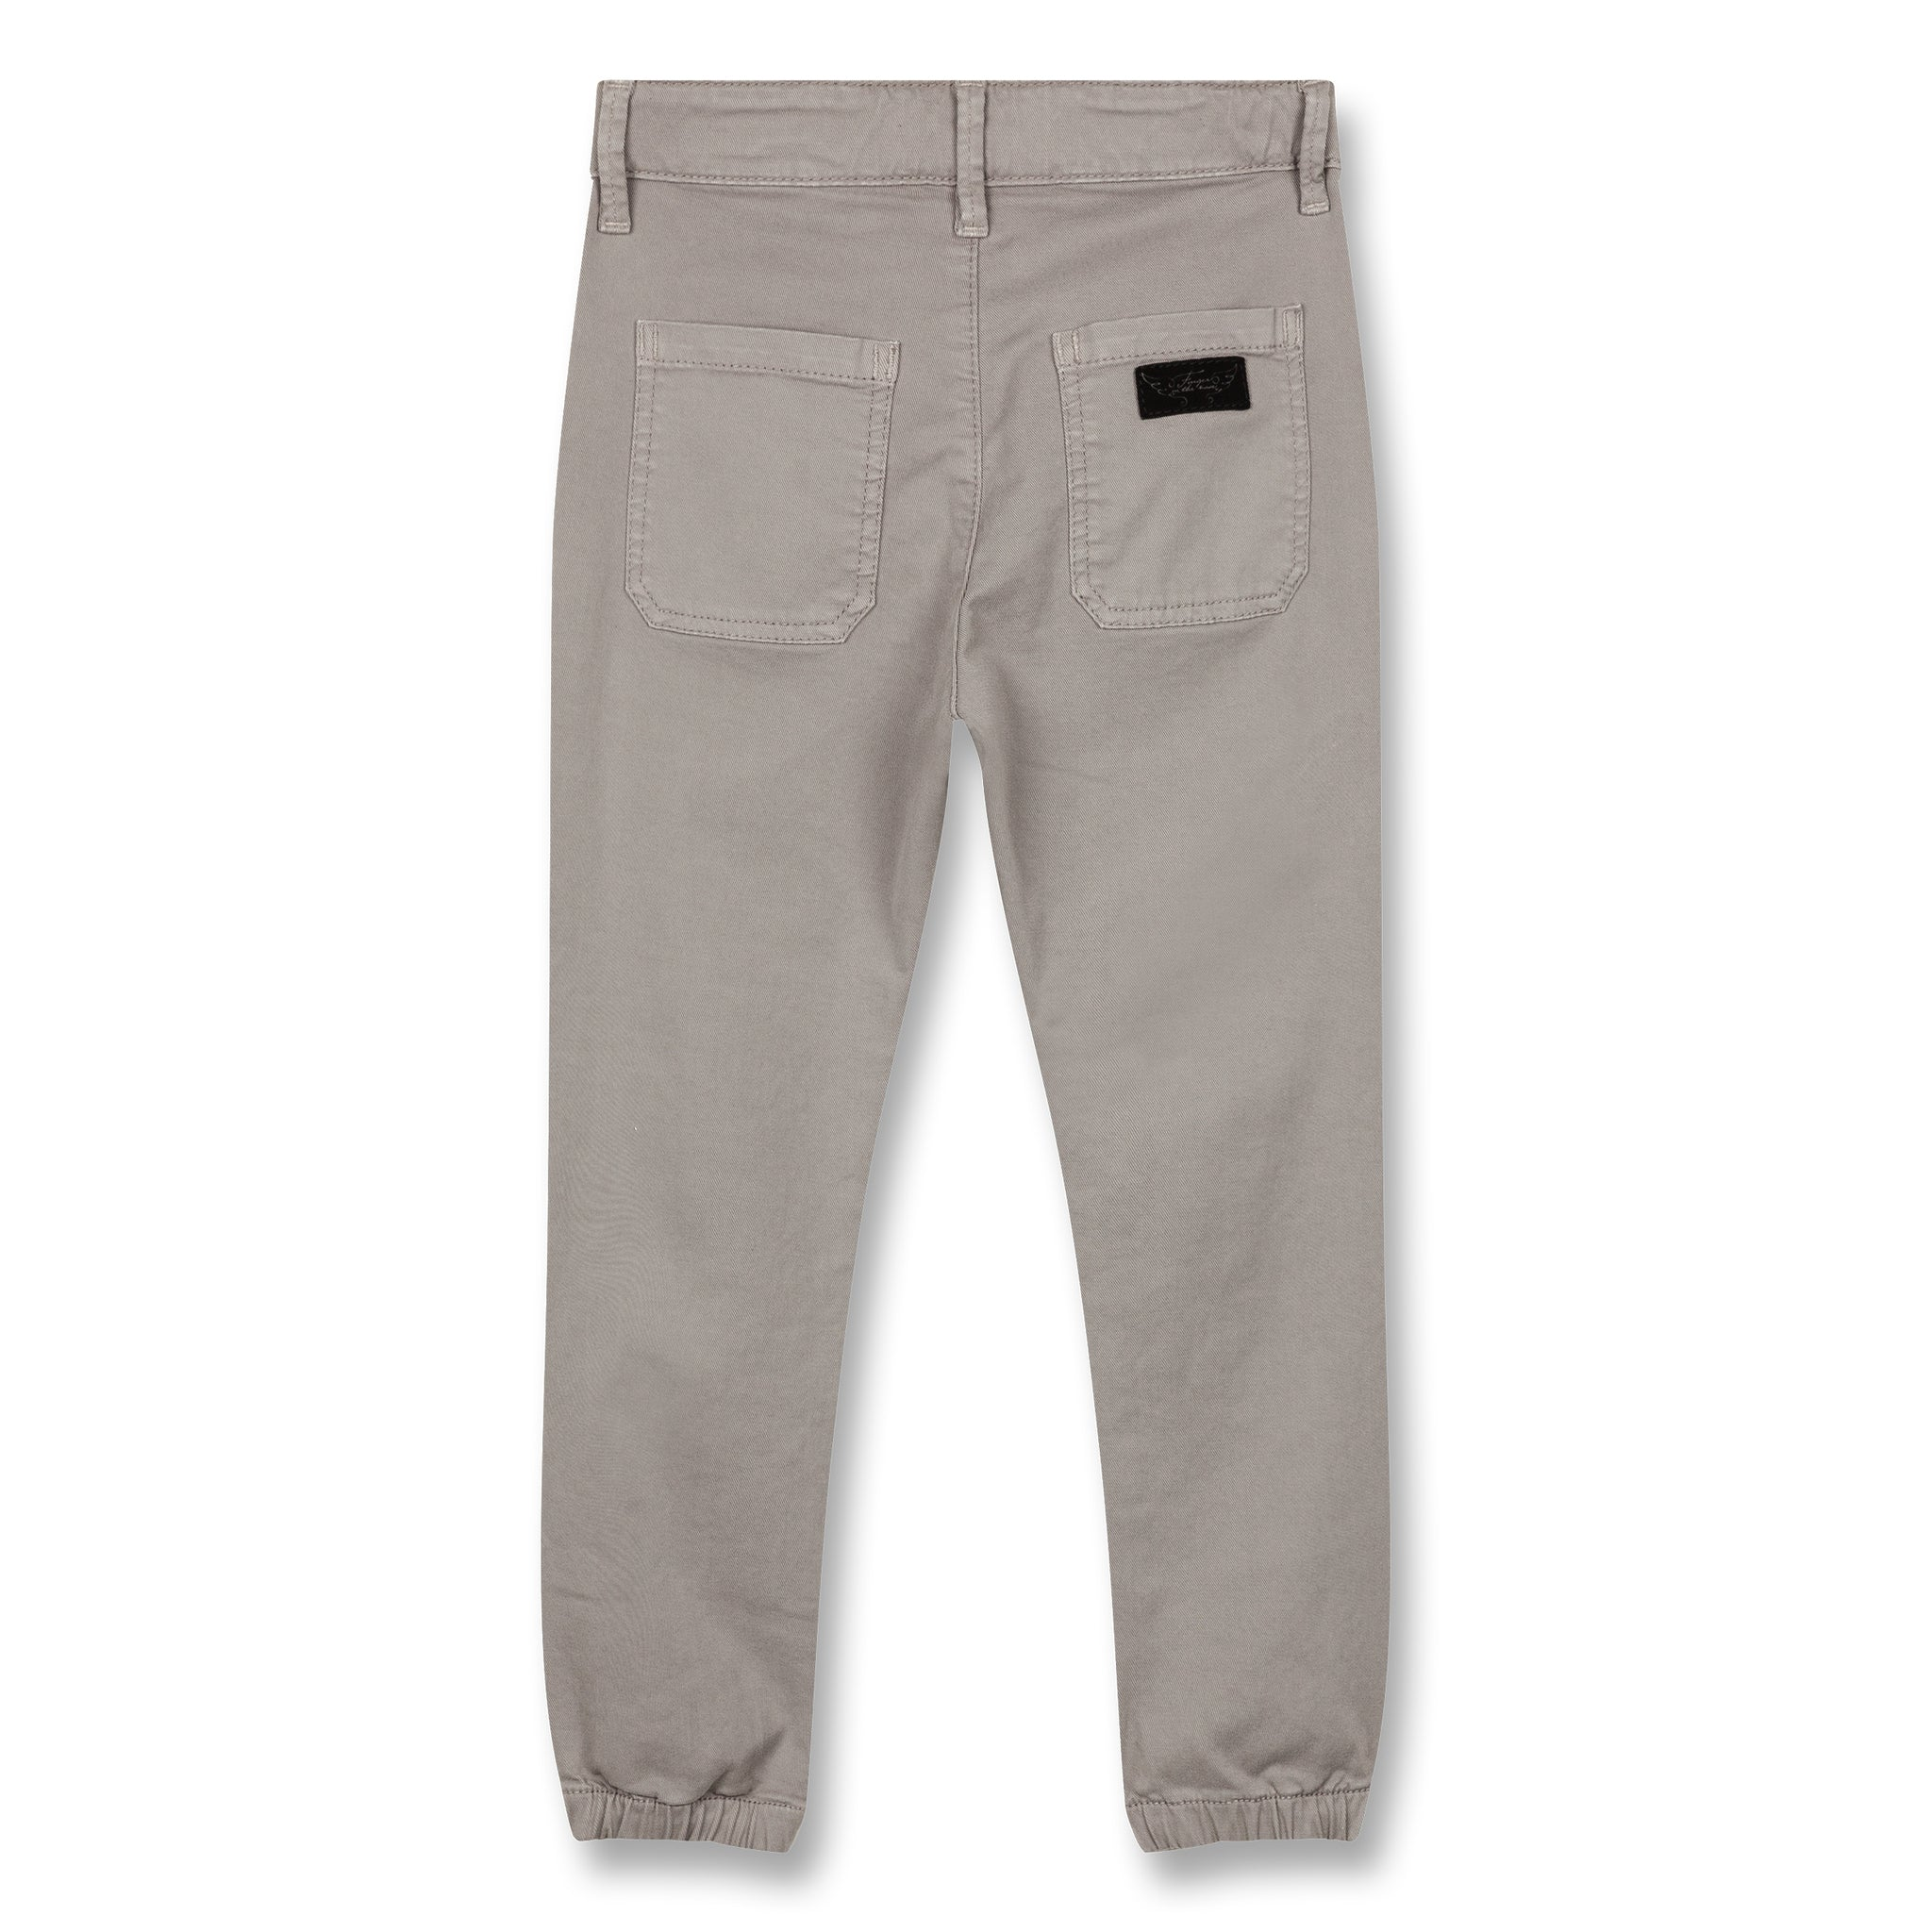 SKATER Warm Grey - Elasticed Bottom Chino Fit Pants 3